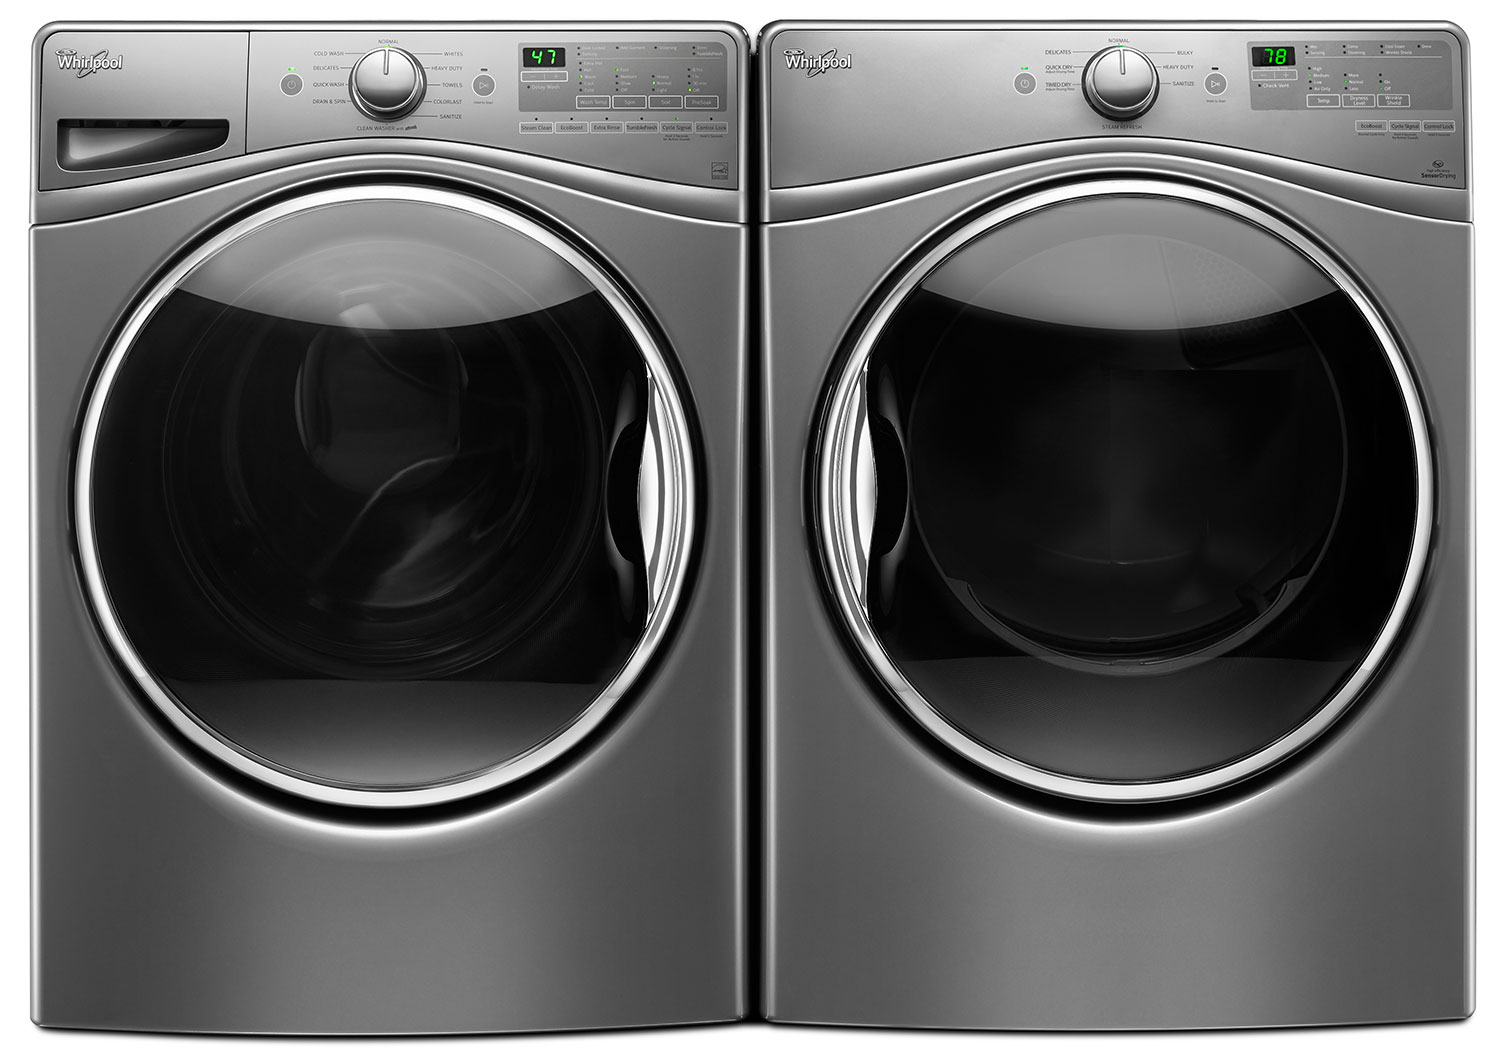 Washers and Dryers - Whirlpool 5.2 Cu. Ft. Front-Load Washer and 7.4 Cu. Ft. Electric Dryer